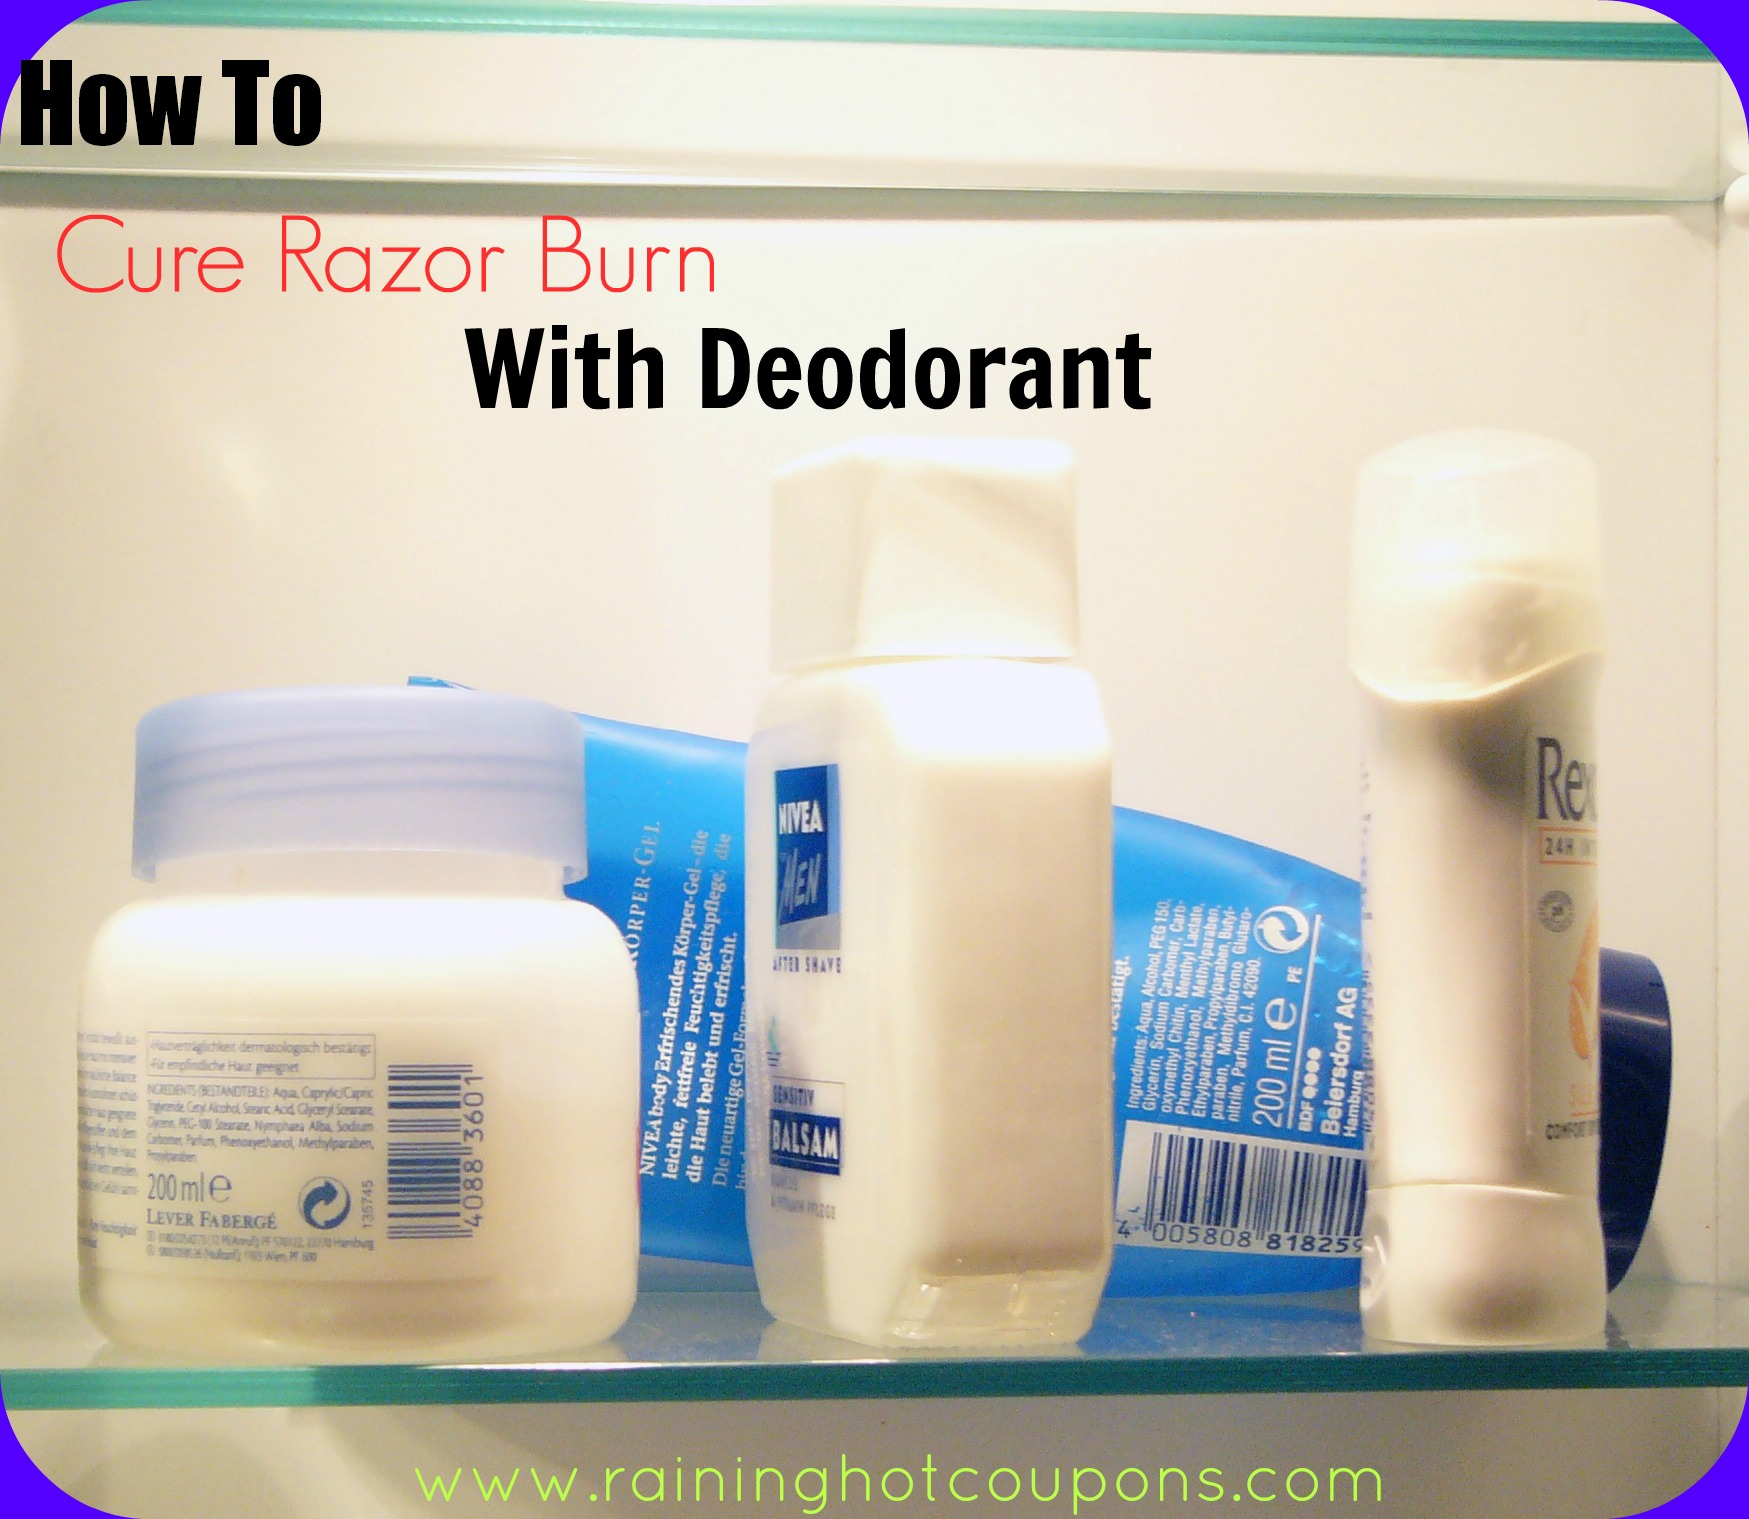 how to cure razor burn with deodorant